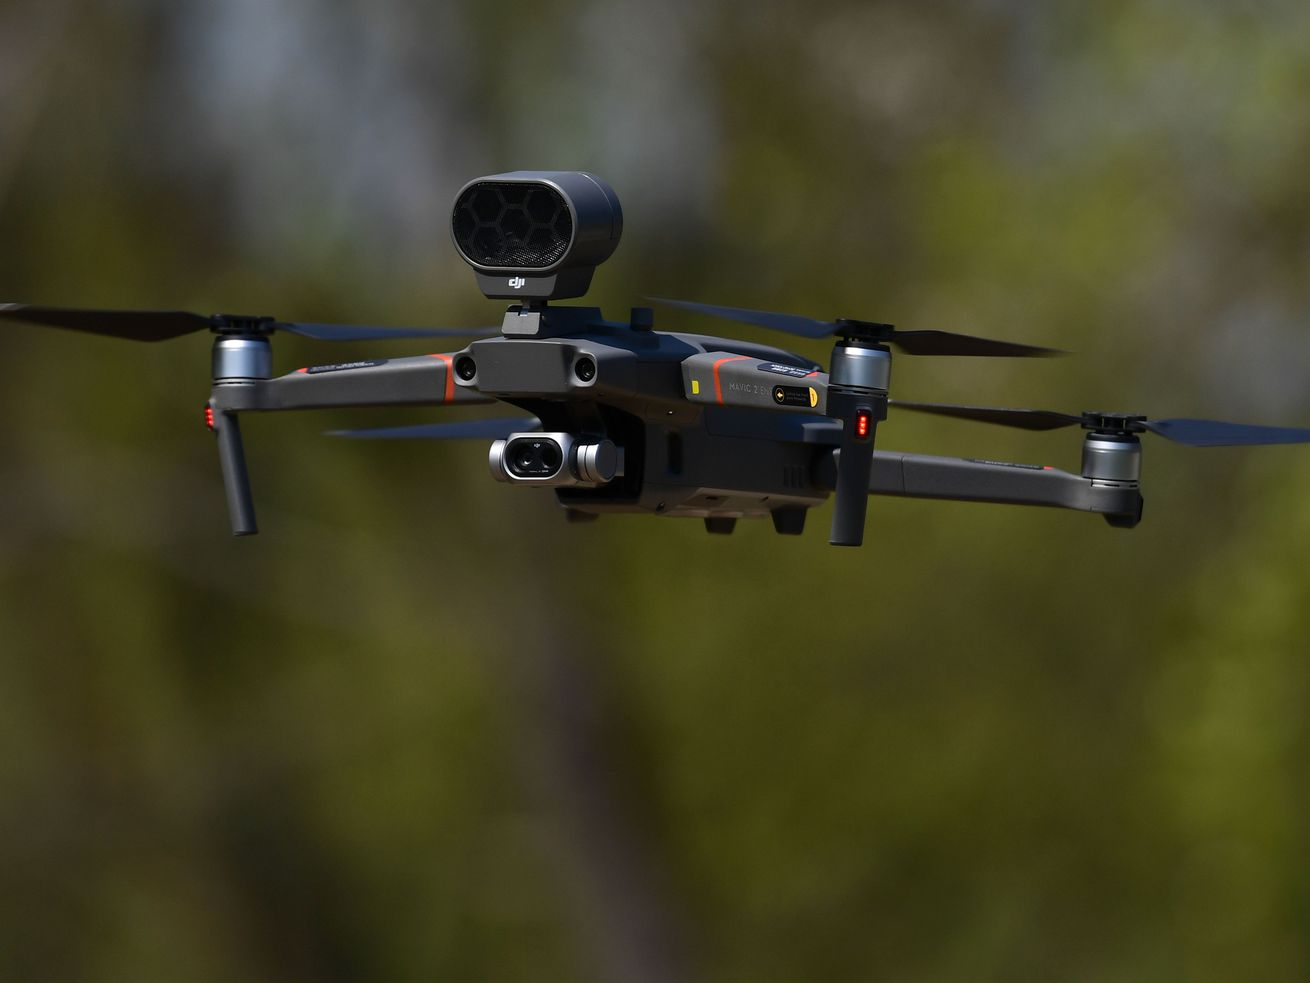 CPD launched secret drone program with off-the-books cash